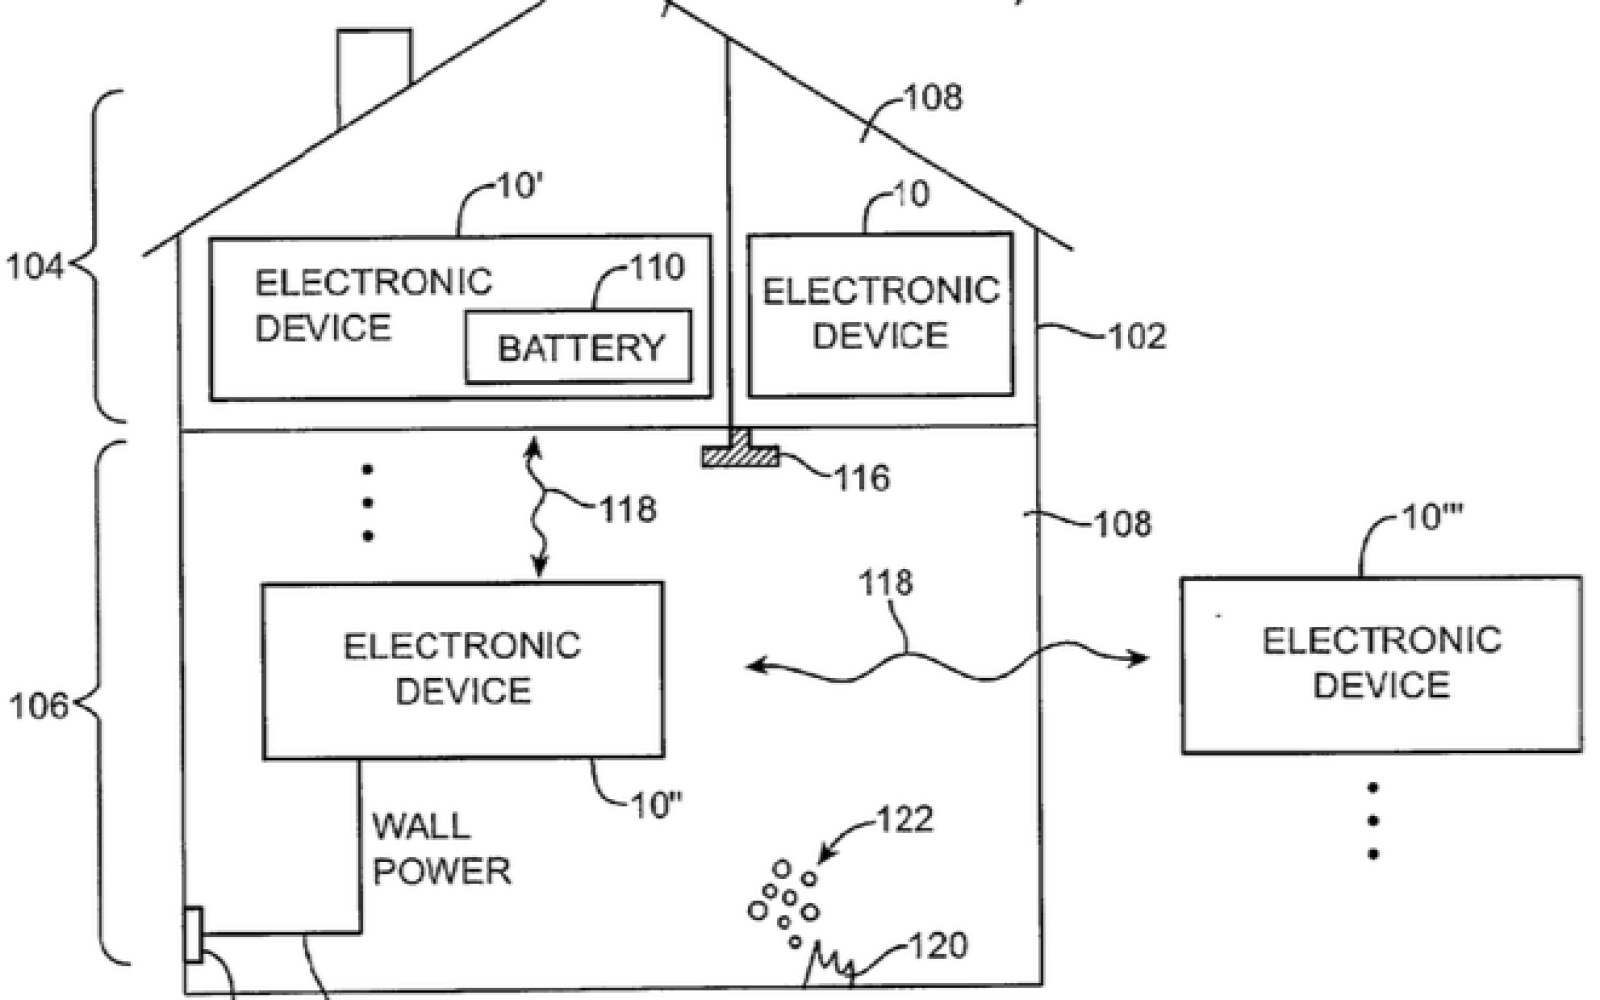 Apple patents smoke detectors in iDevices that can call 911, activate sprinklers and locate building occupants